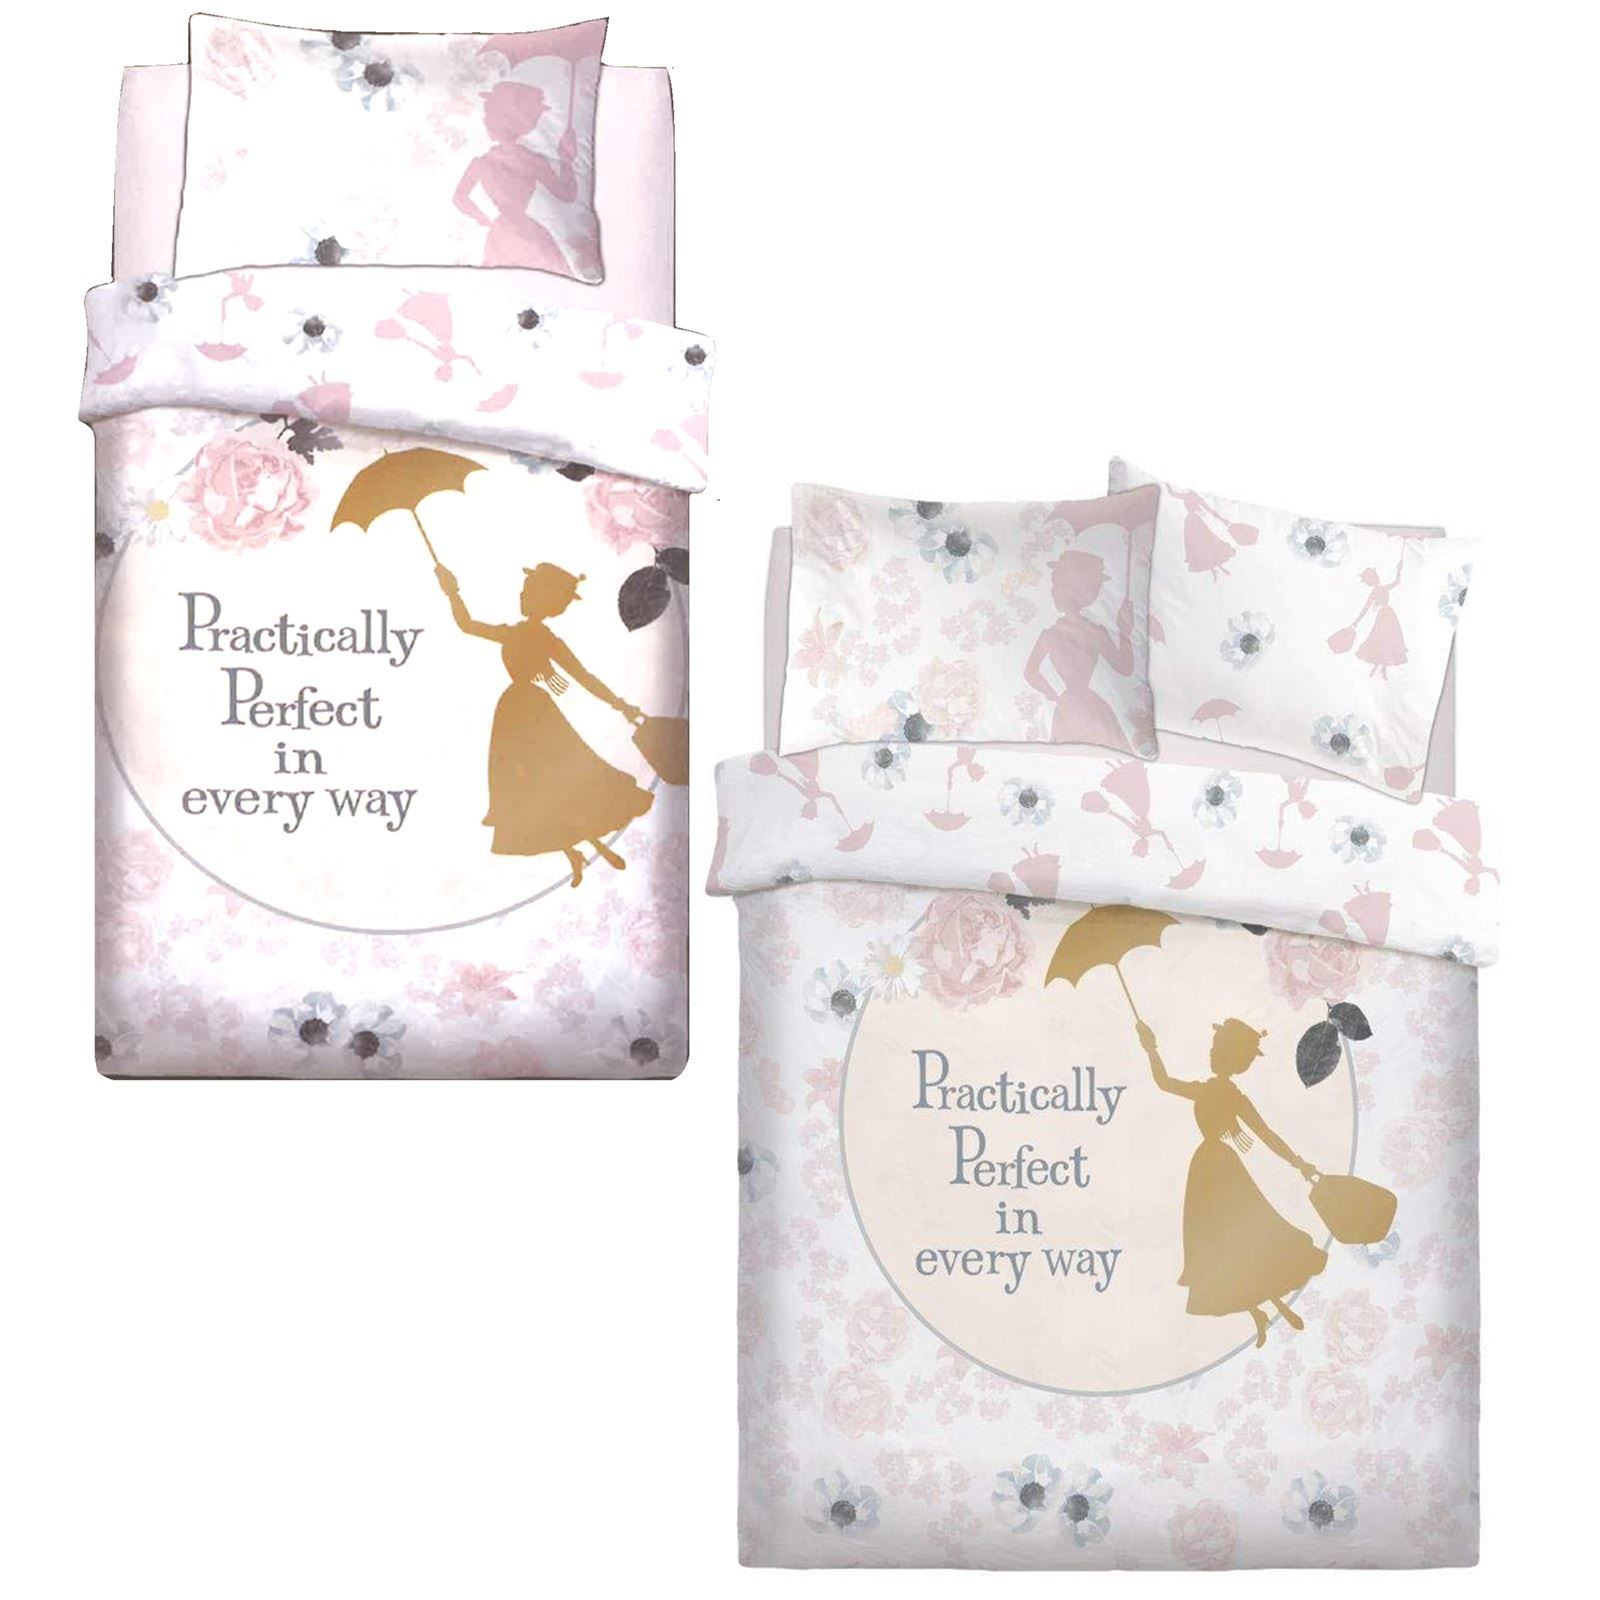 OFFICIAL MARY POPPINS PERFECT SINGLE DUVET COVER SET REVERSIBLE BEDDING DISNEY